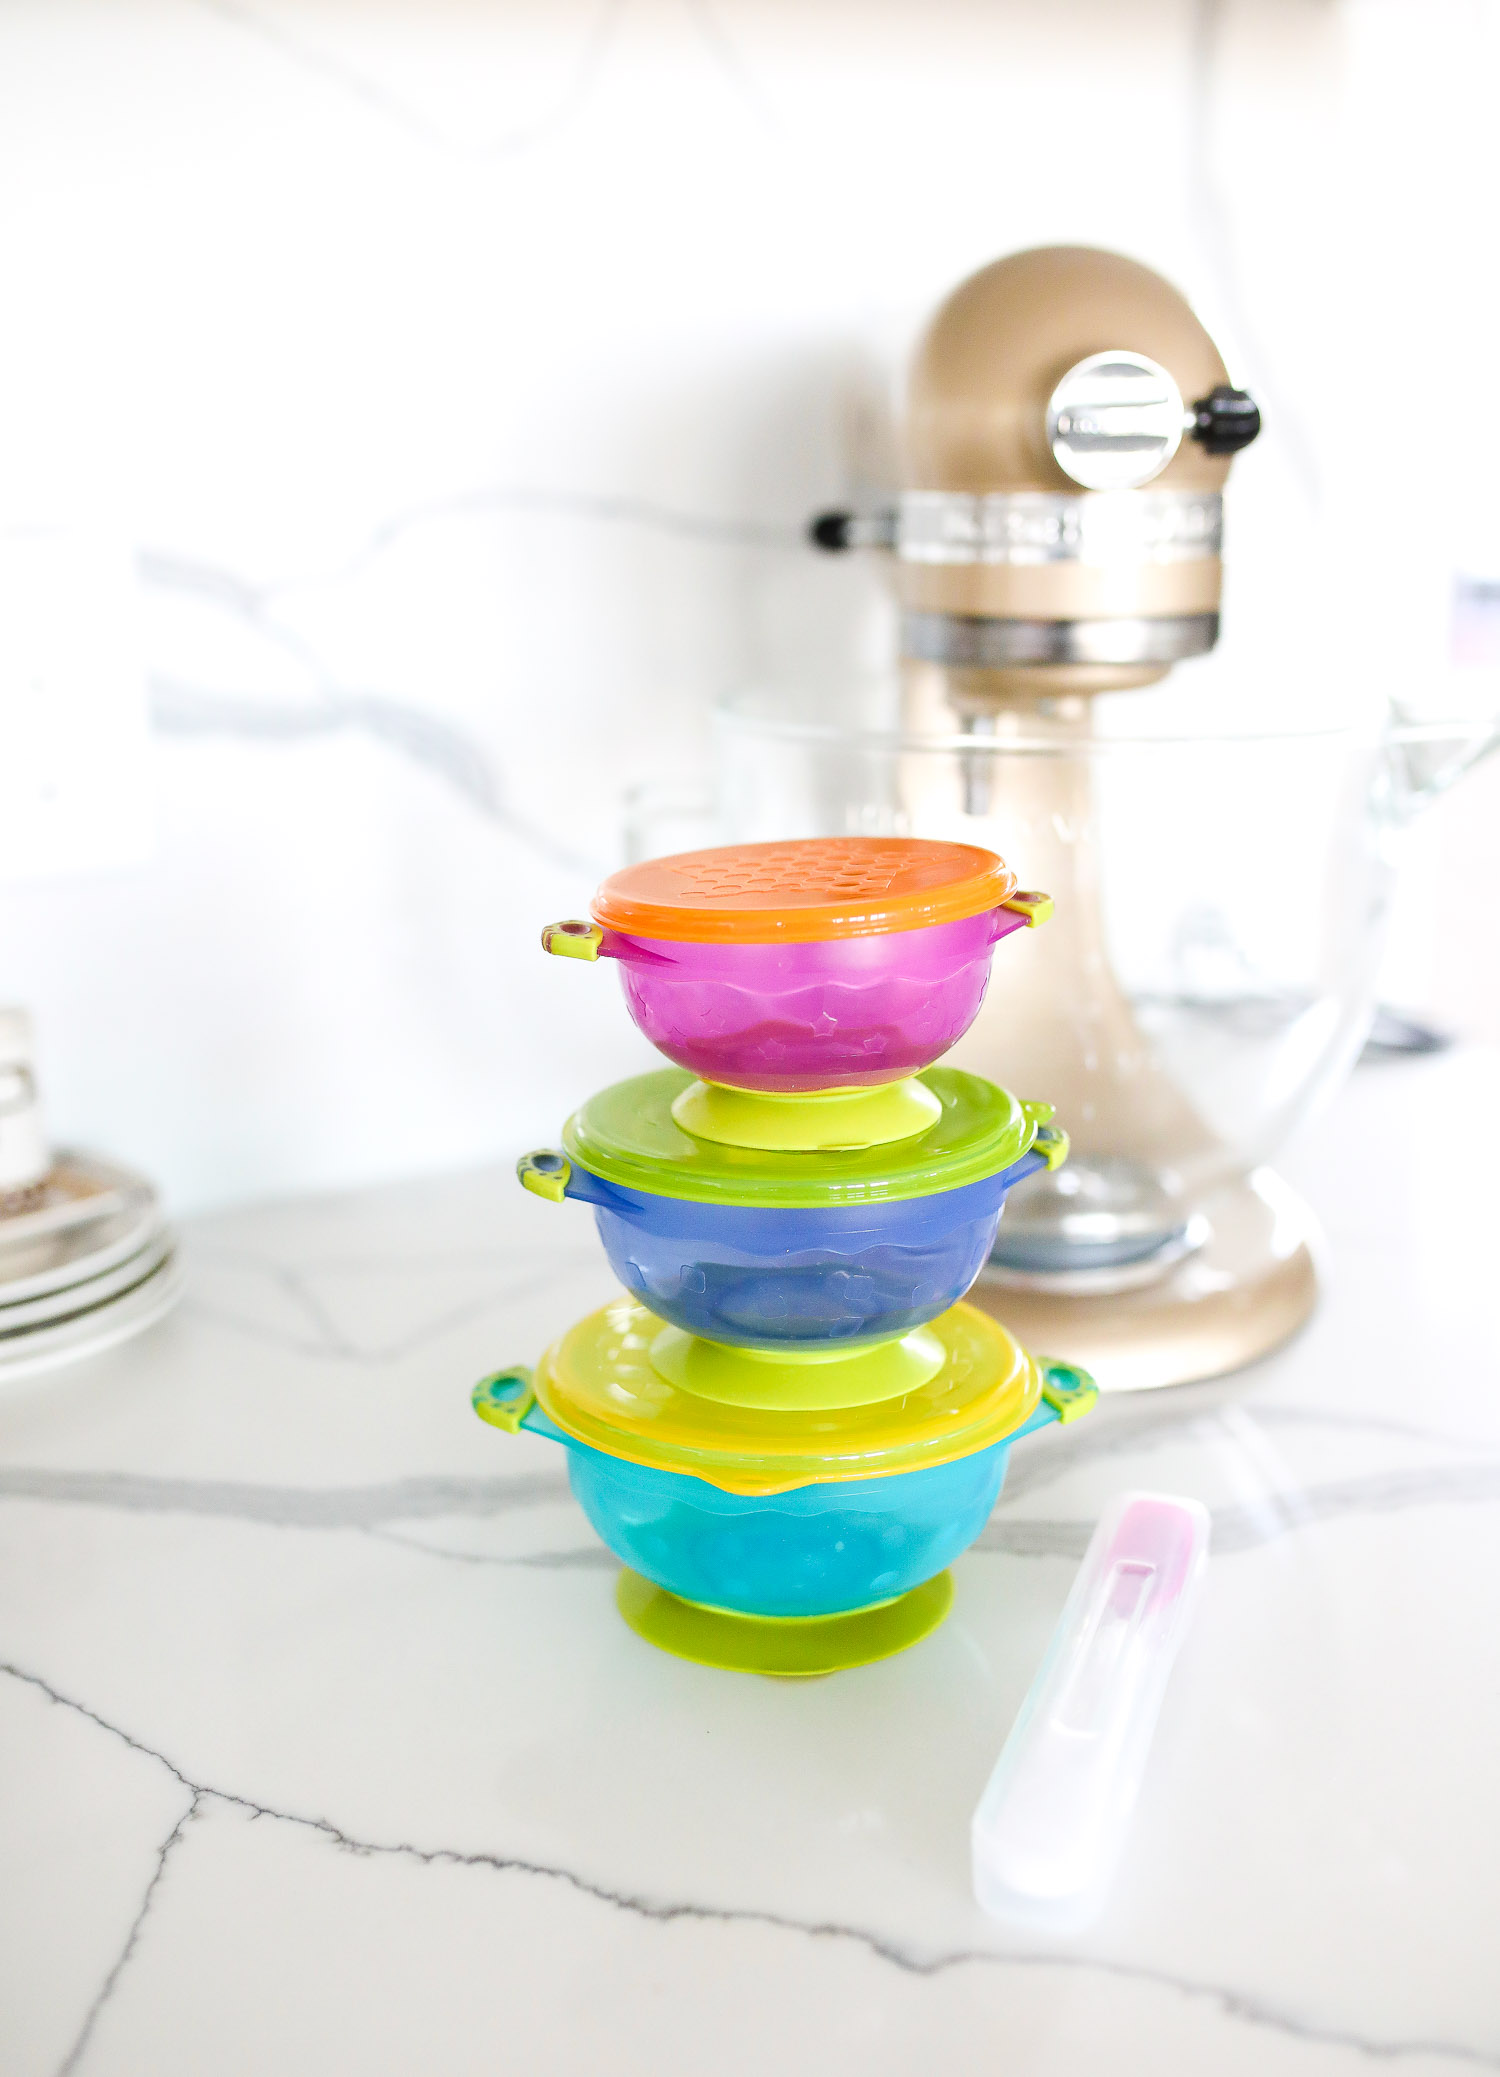 kids travel dishes bowls, top amazon must haves, amazon best buys 2020, emily gemma, amazon prime must haves blog post,_-4 | Amazon Prime Favorites by popular US life and style blog, The Sweetest Thing: image of Amazon Prime kids stackable travel bowls with suction.